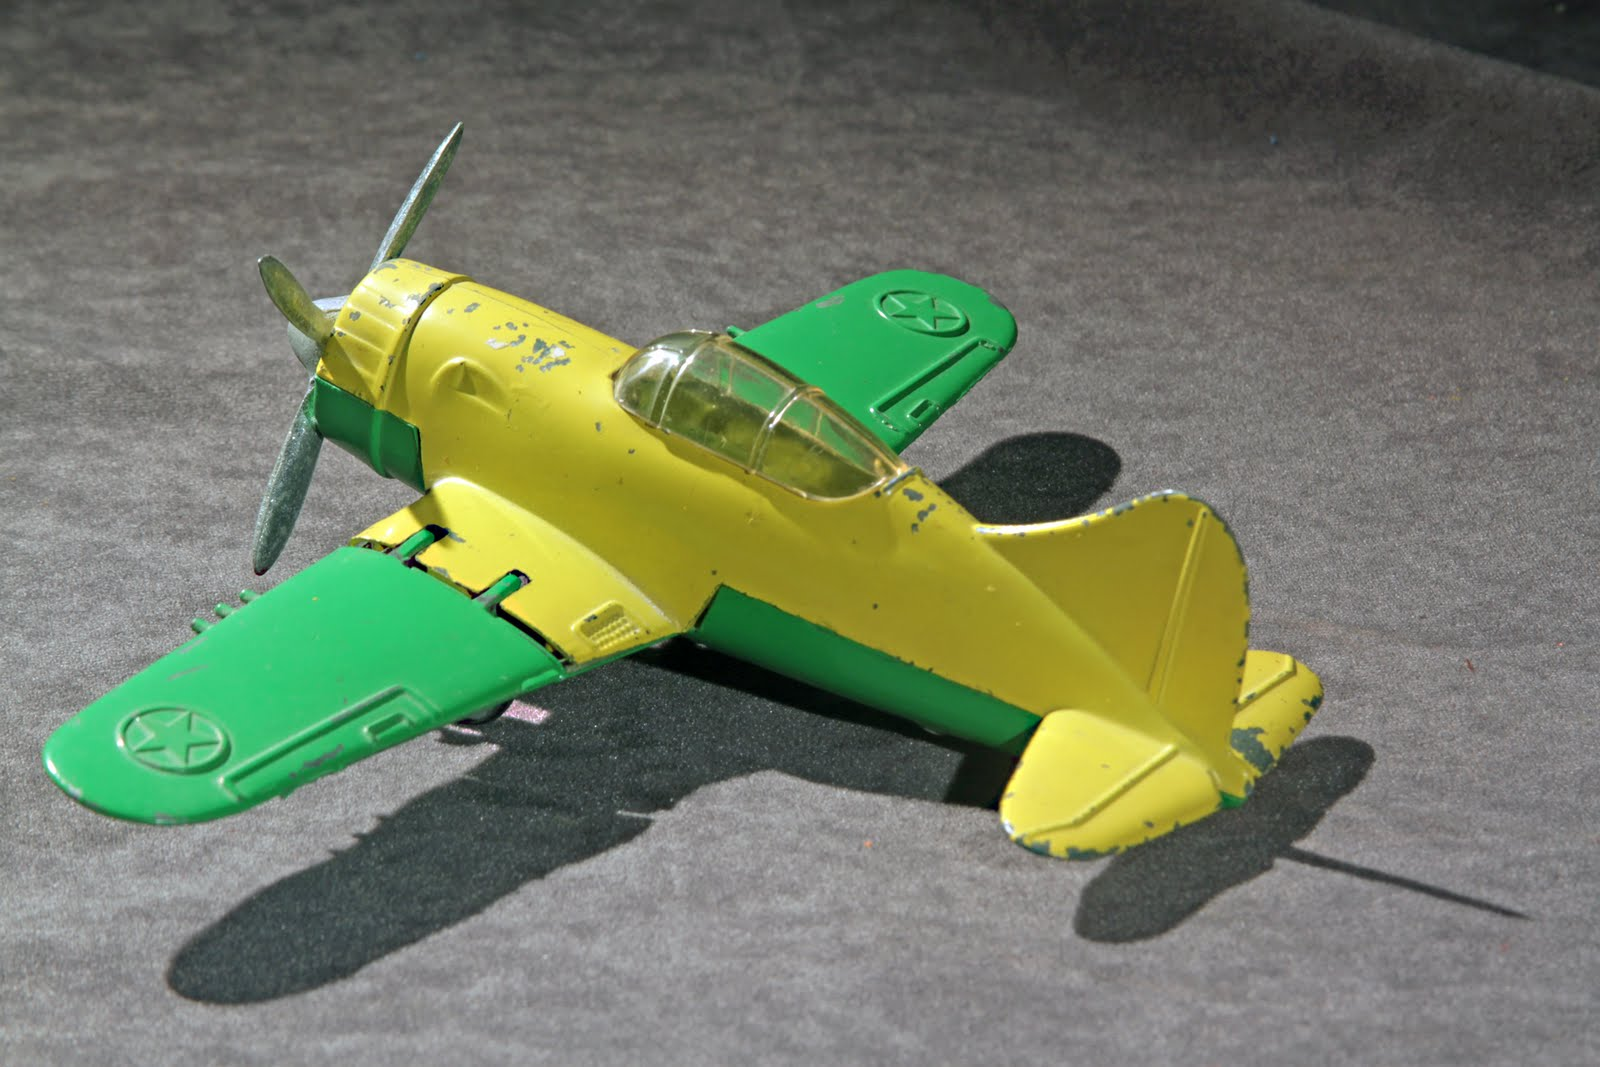 Old Antique Toys Vintage Old Metal Toy Airplanes